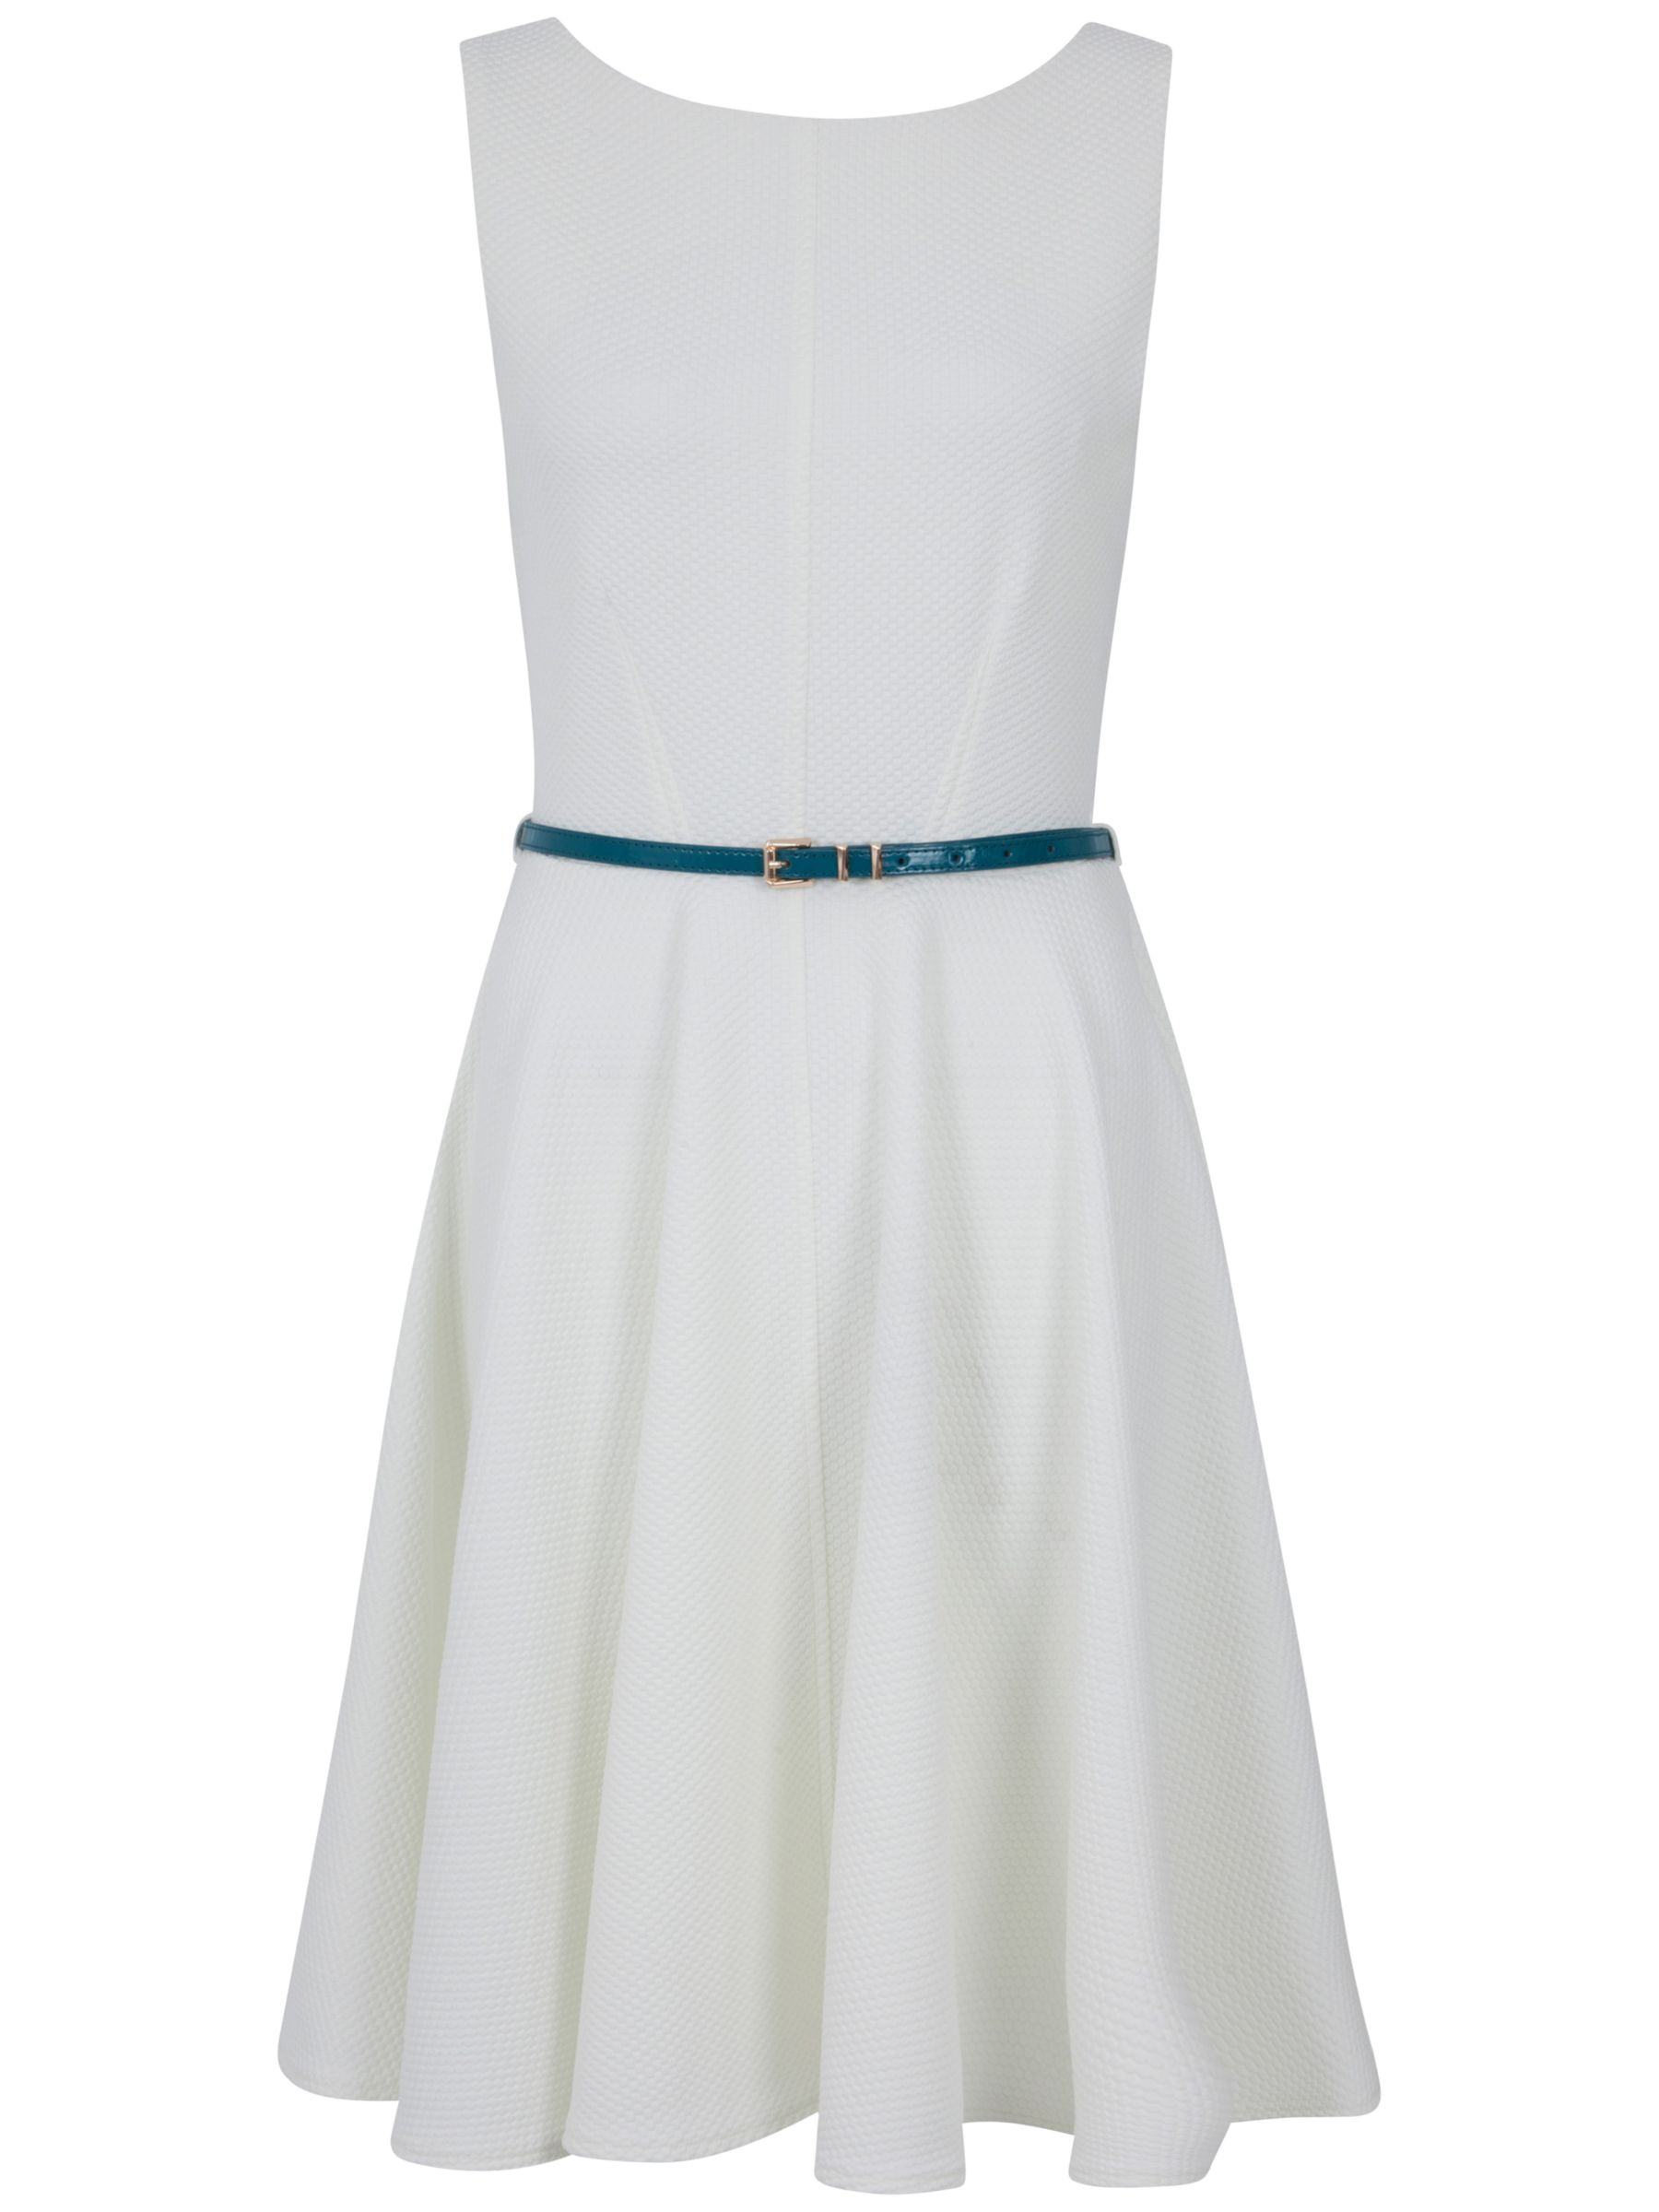 almari waffle belted dress ivory, almari, waffle, belted, dress, ivory, 8|14|12|10, clearance, womenswear offers, womens dresses offers, women, inactive womenswear, new reductions, womens dresses, buy now save for spring, special offers, 1757189